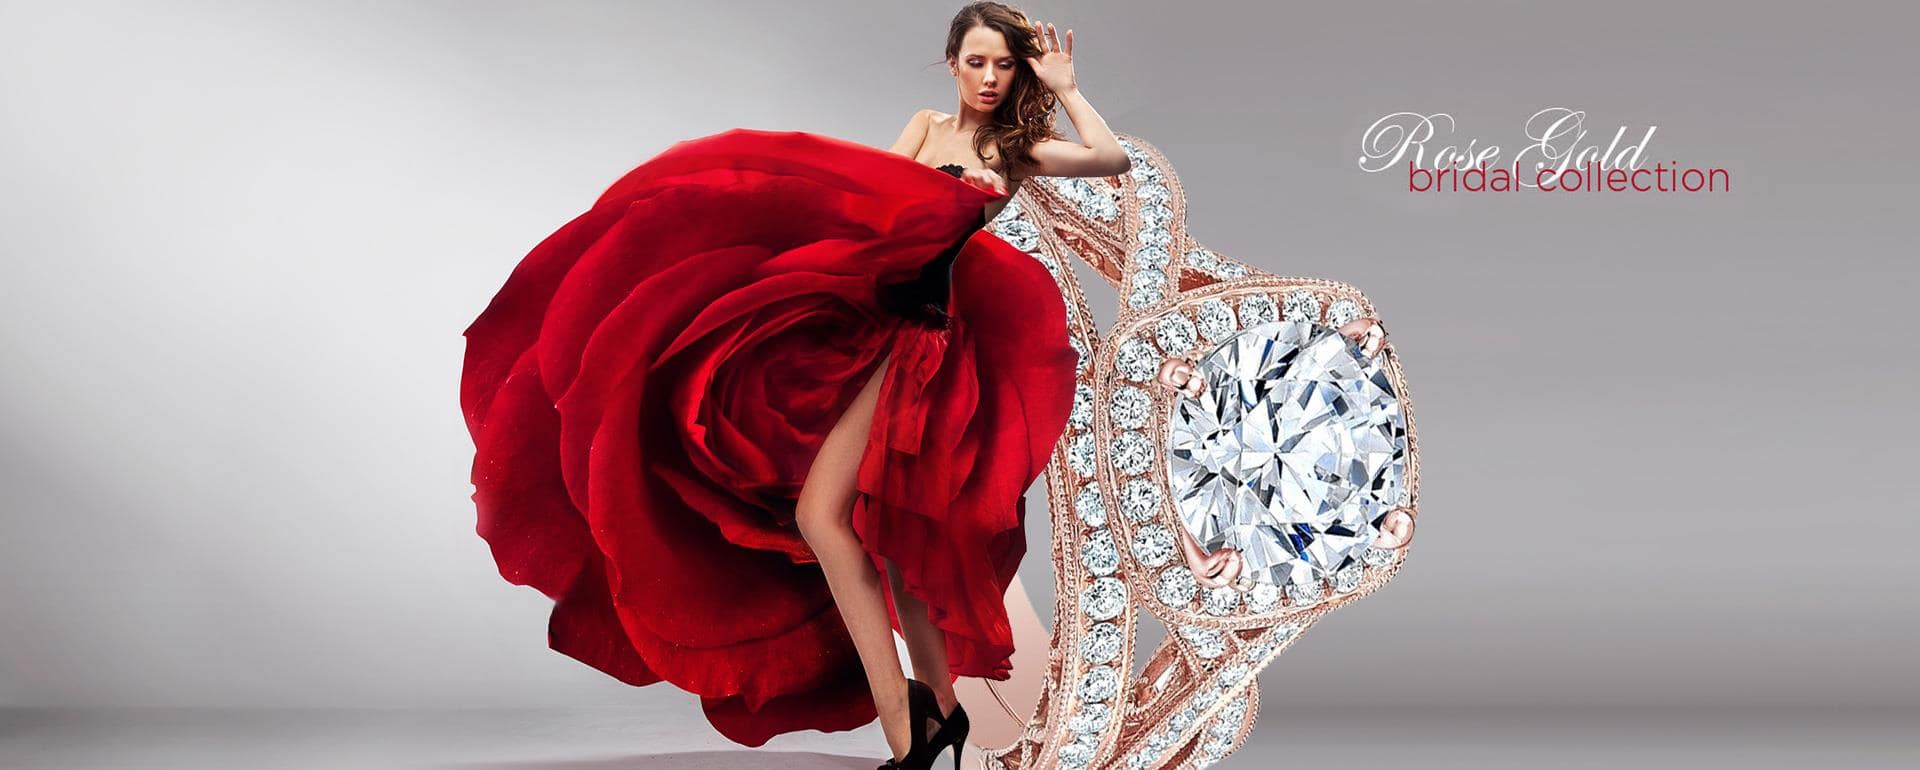 J Foster Jewelers Your Trusted Source for Diamond Gemstone